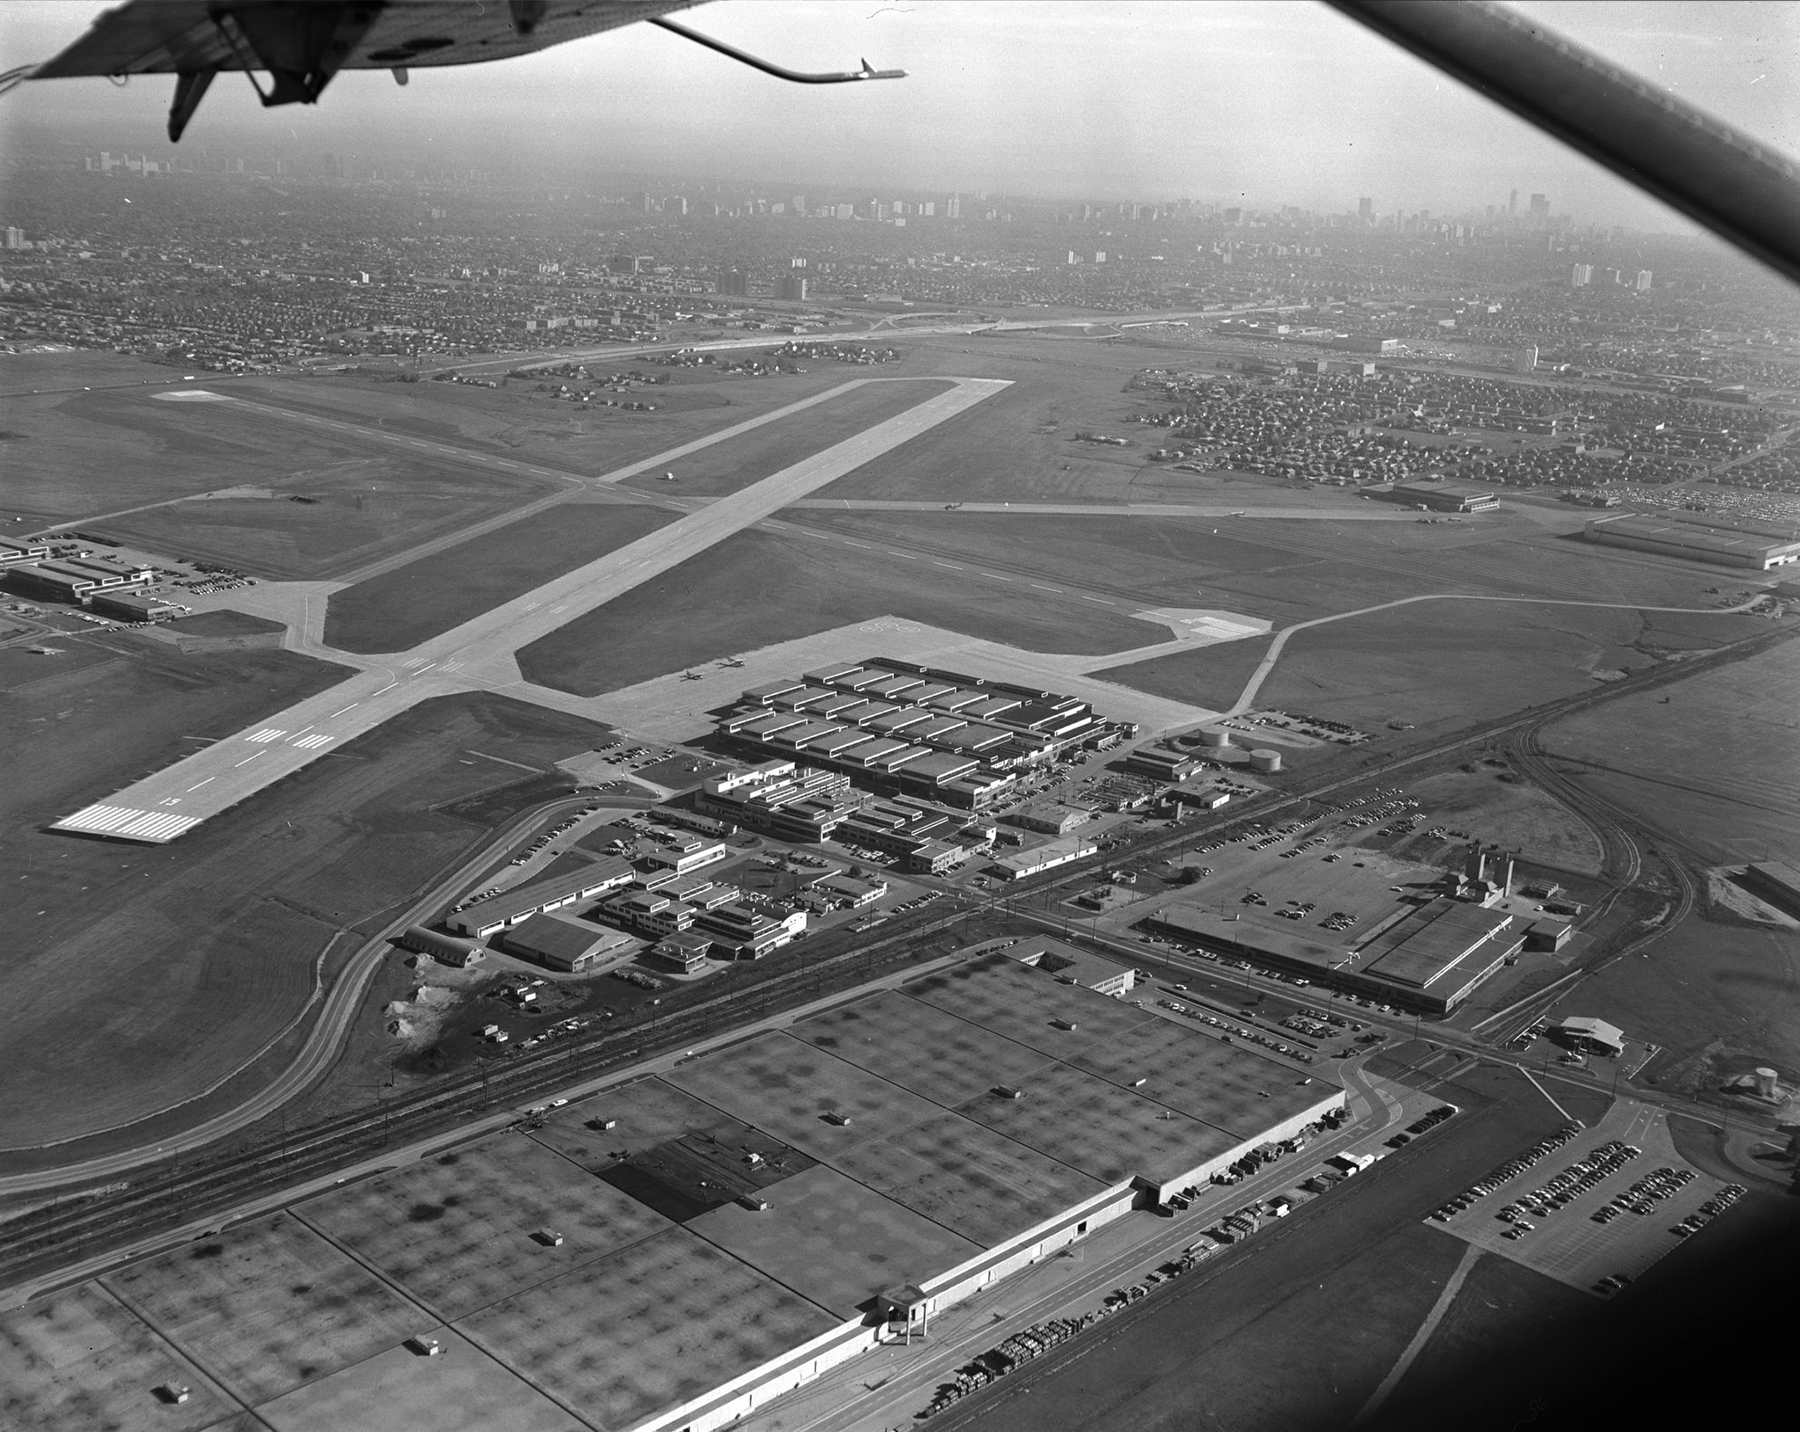 An October 20, 1971, aerial view of Canadian Forces Base Toronto, looking southeast to Toronto's waterfront. The site began as RCAF Station Downsview, and is now Downsview Airport, located just north of Highway 401 and east of Highway 400. PHOTO: DND Archives, DV71-1269